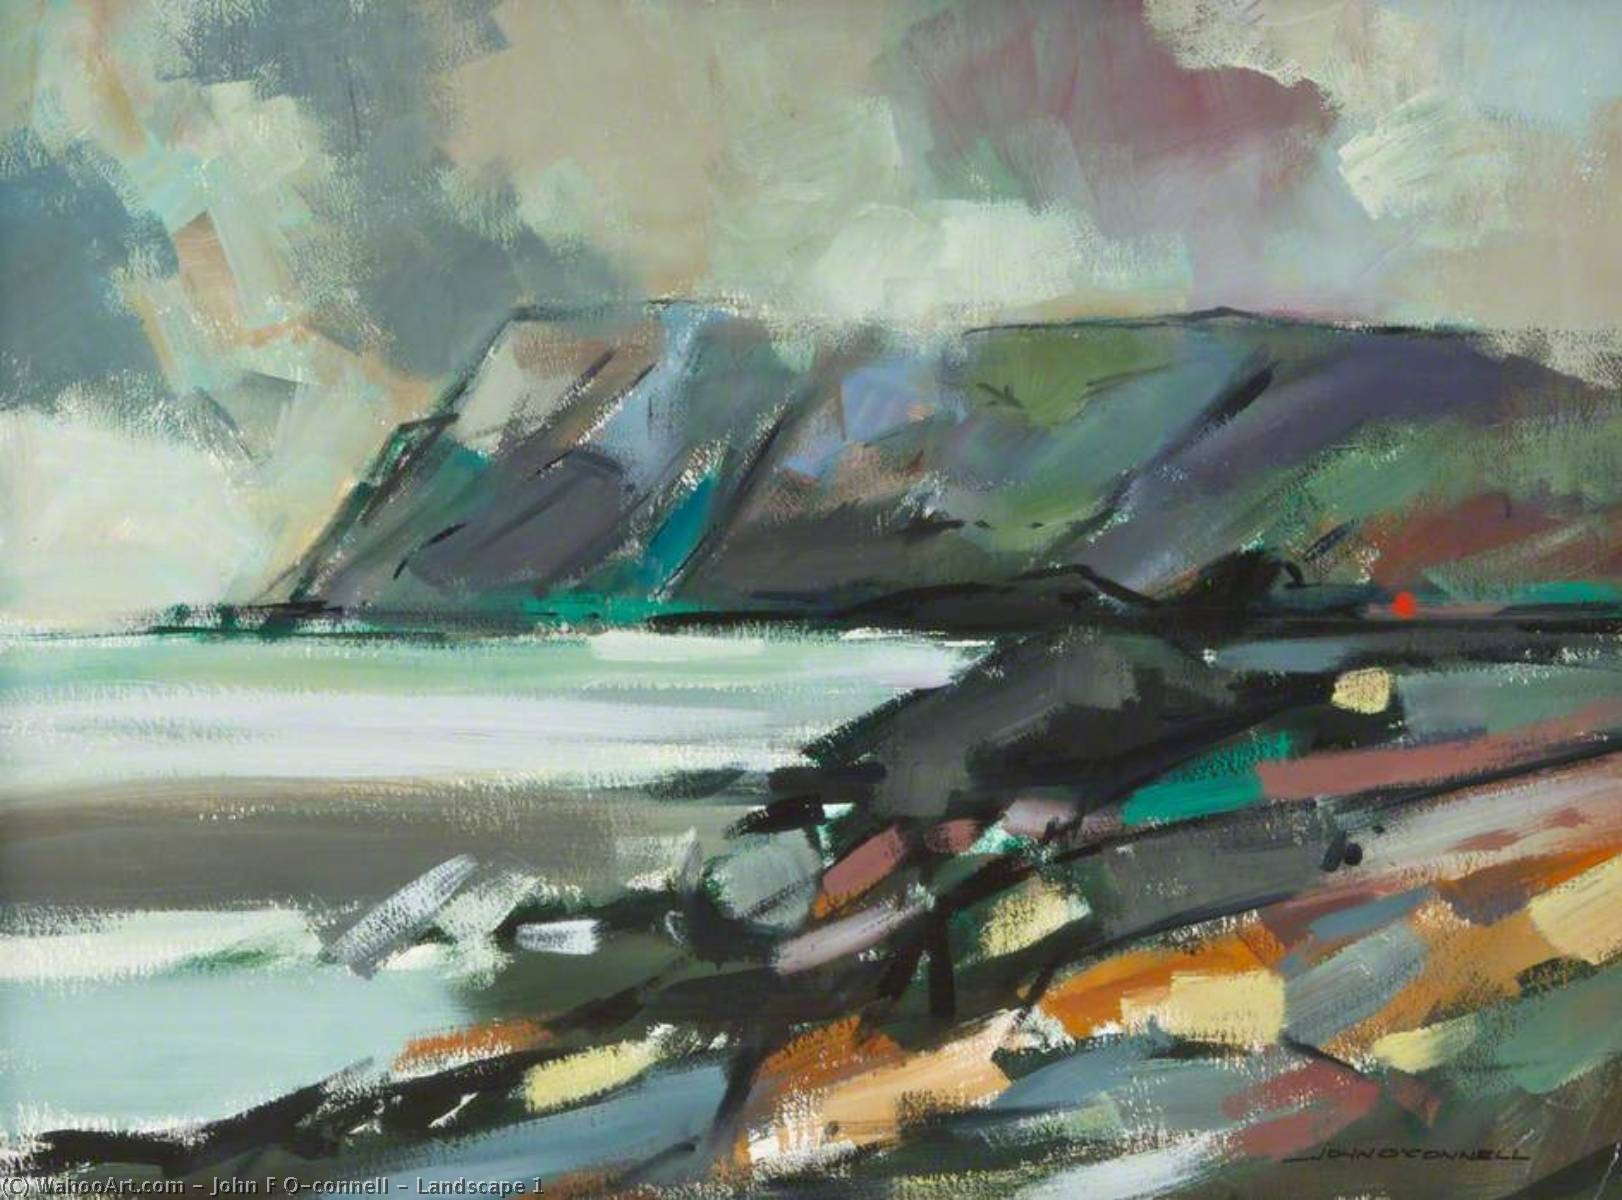 Landscape 1 by John F O'connell | Art Reproductions John F O'connell | WahooArt.com